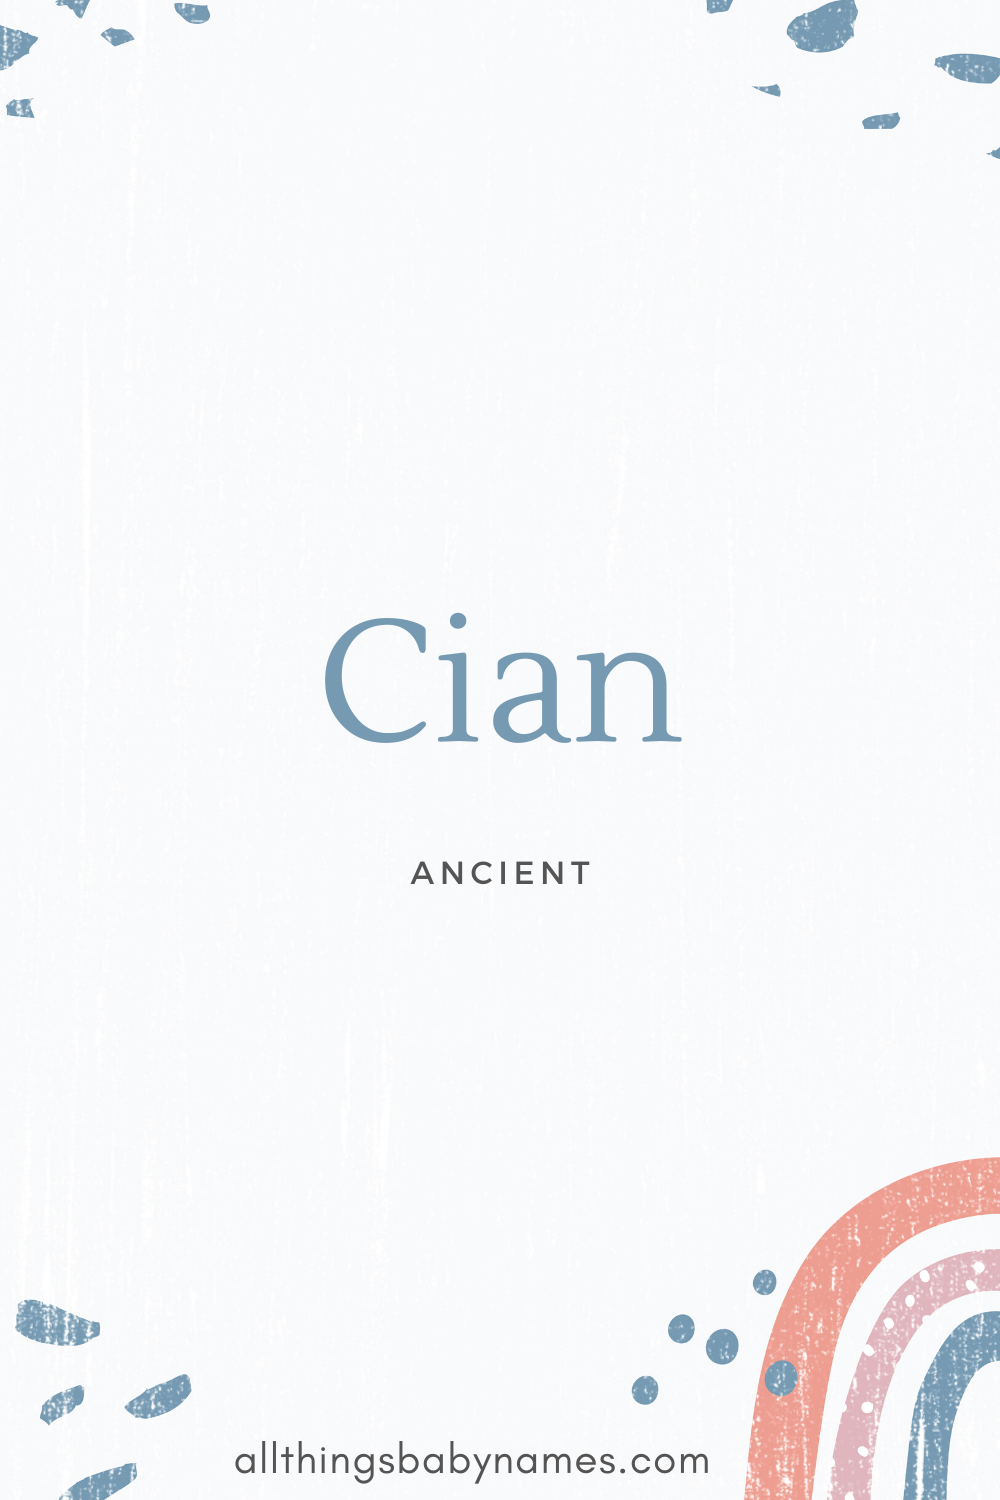 Cain Baby Name Names With Meaning Name Inspiration Fantasy Boy Names